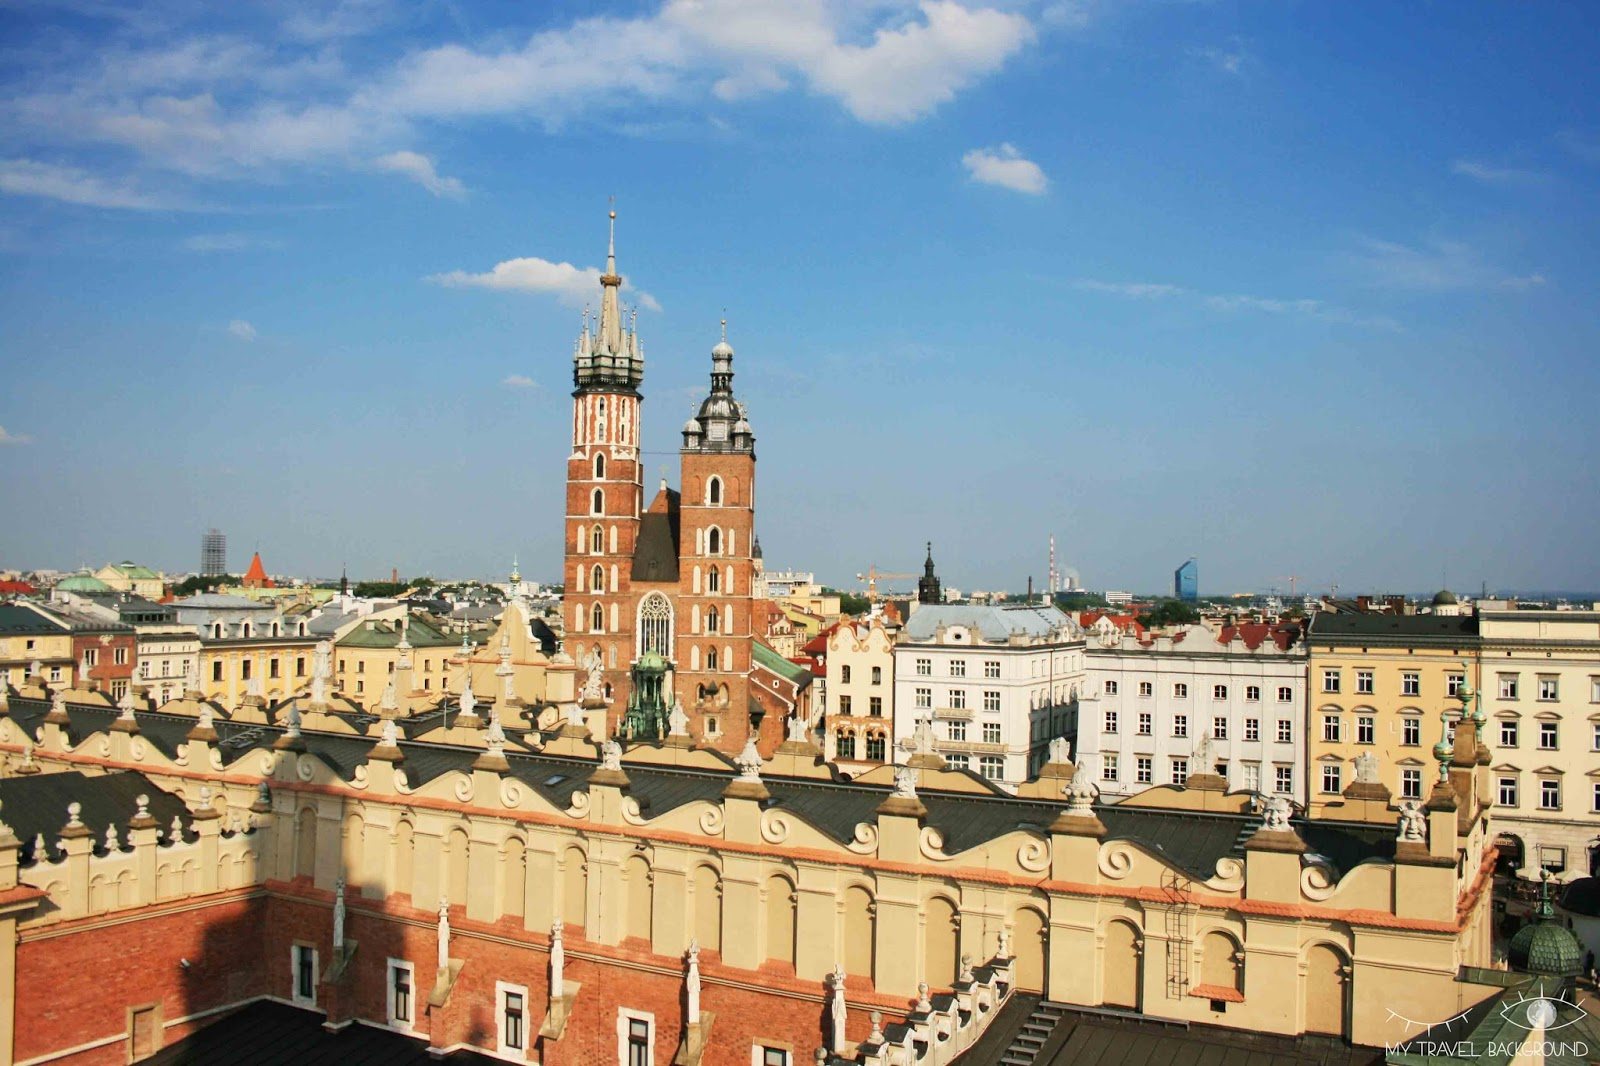 My Travel Background : cartes postales de Pologne - Cracovie